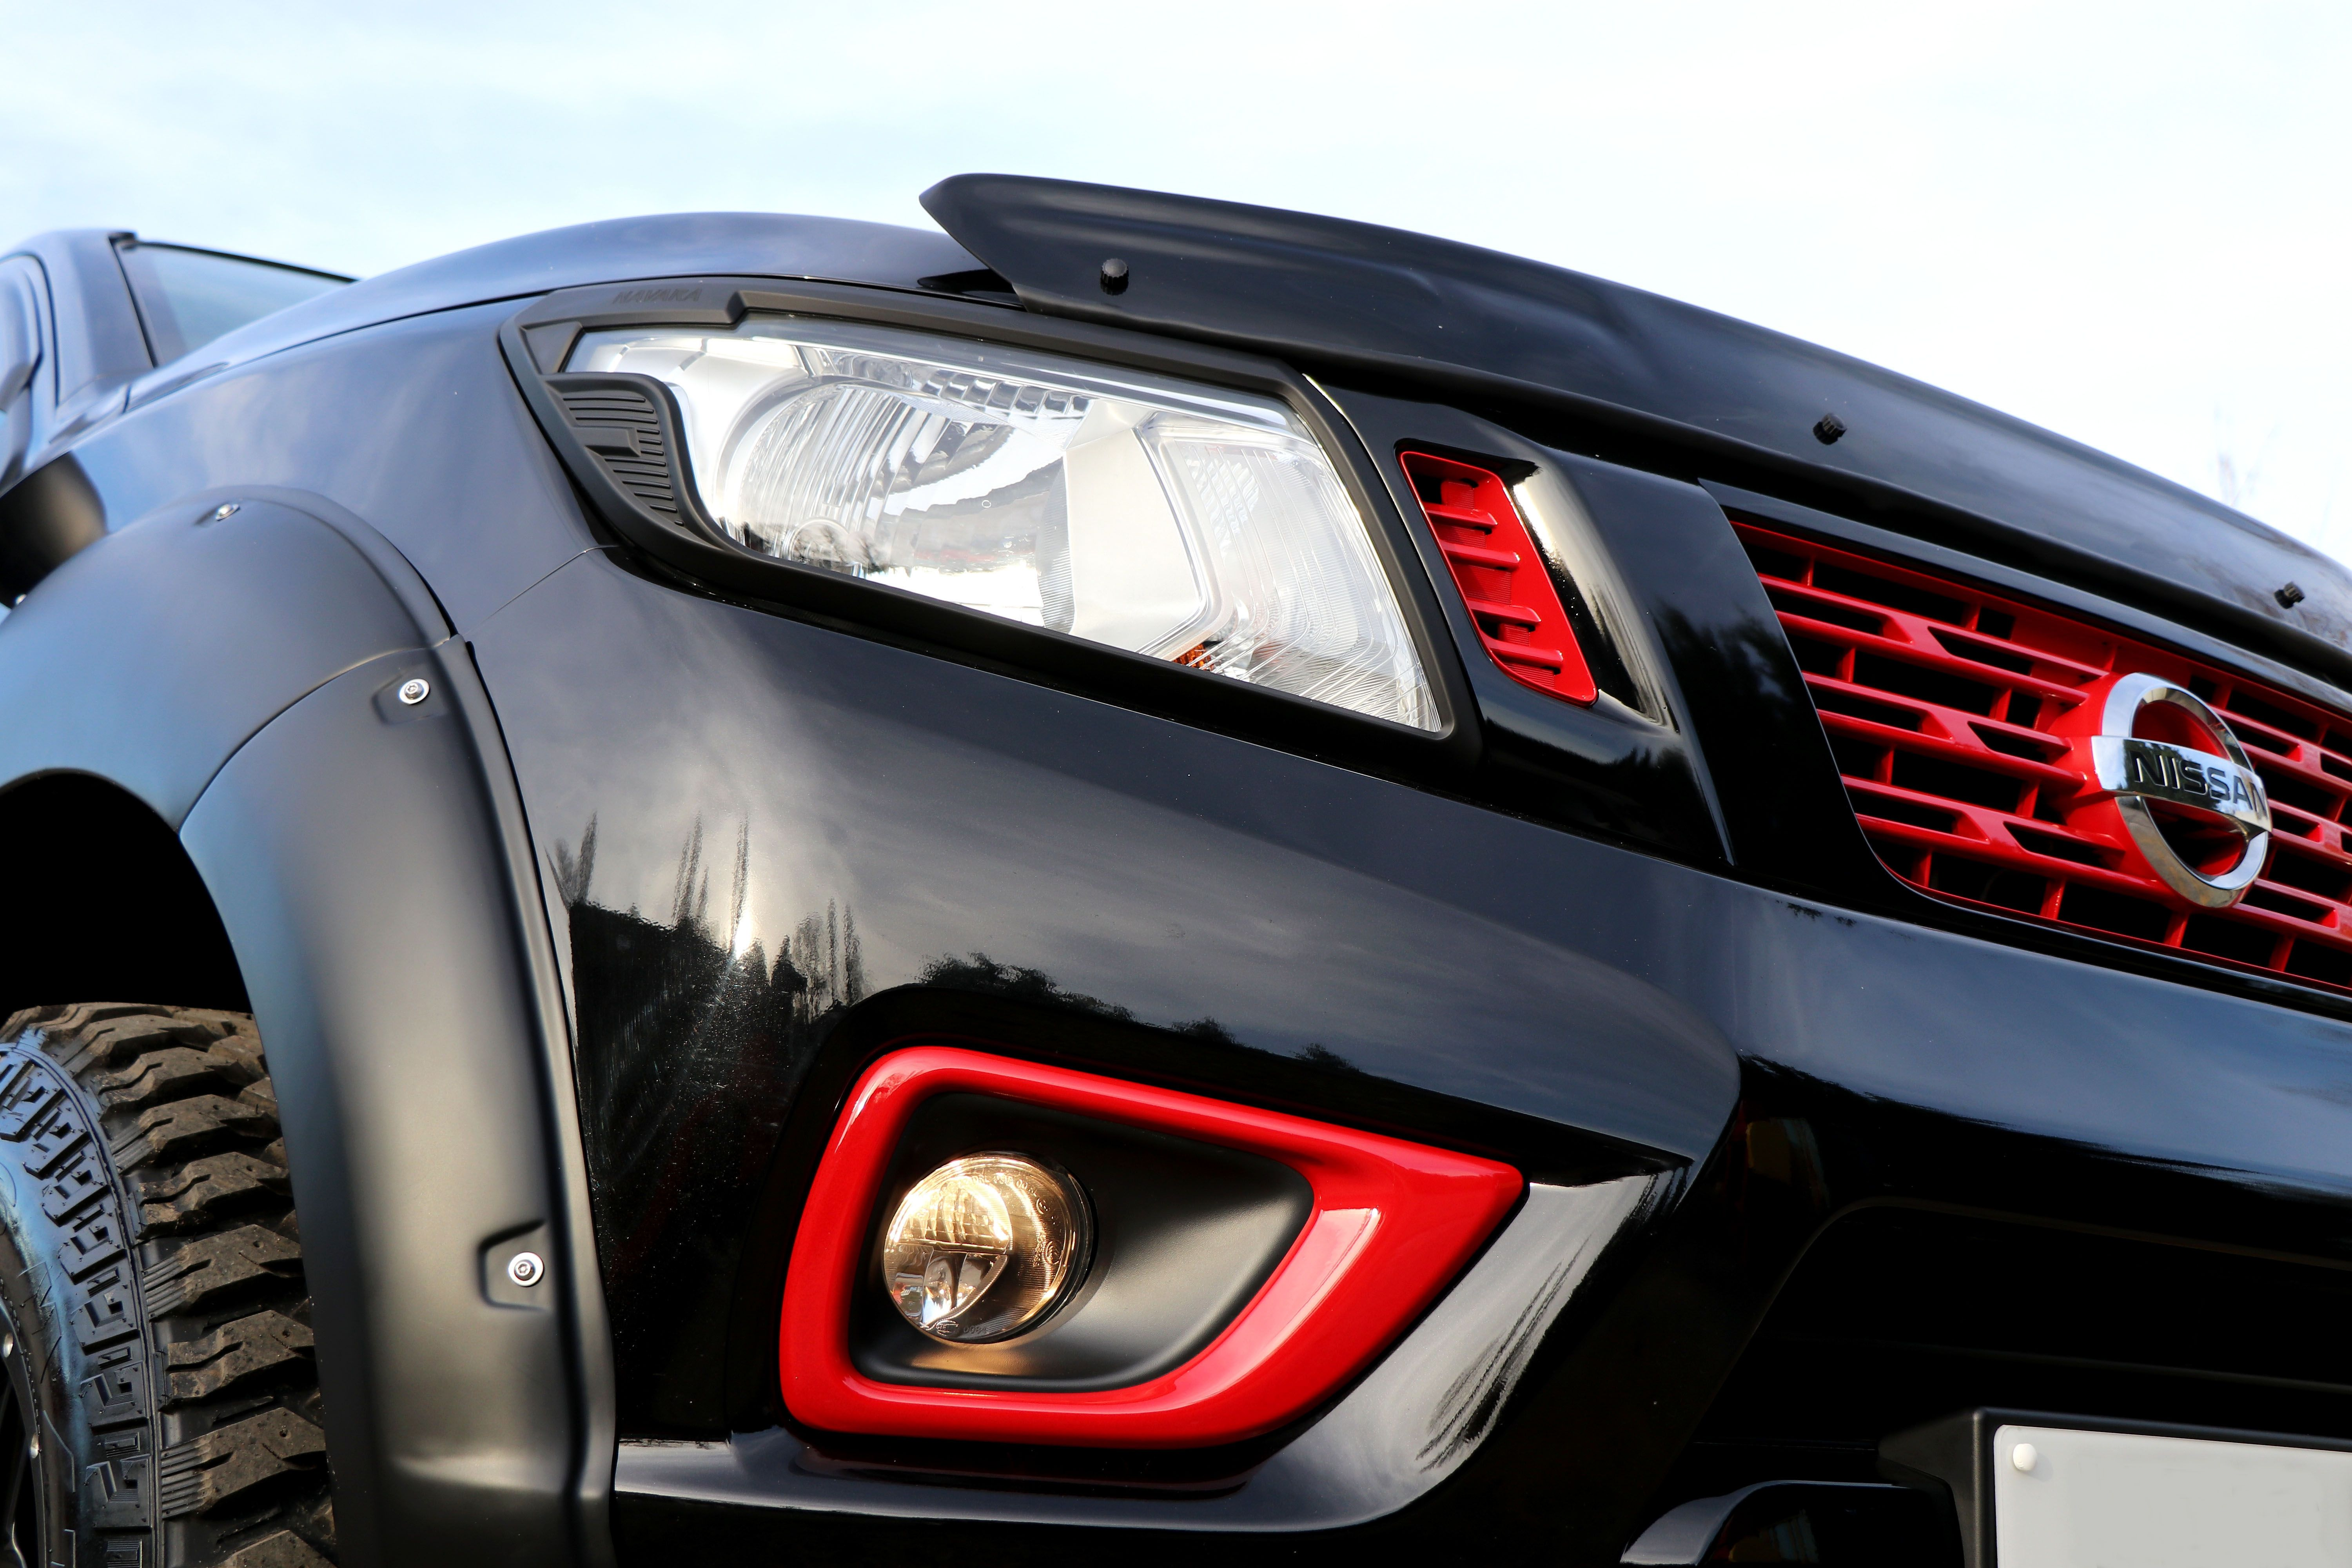 SEEKER Tungsten Carbide Special Editions - a conversion for the Nissan Navara